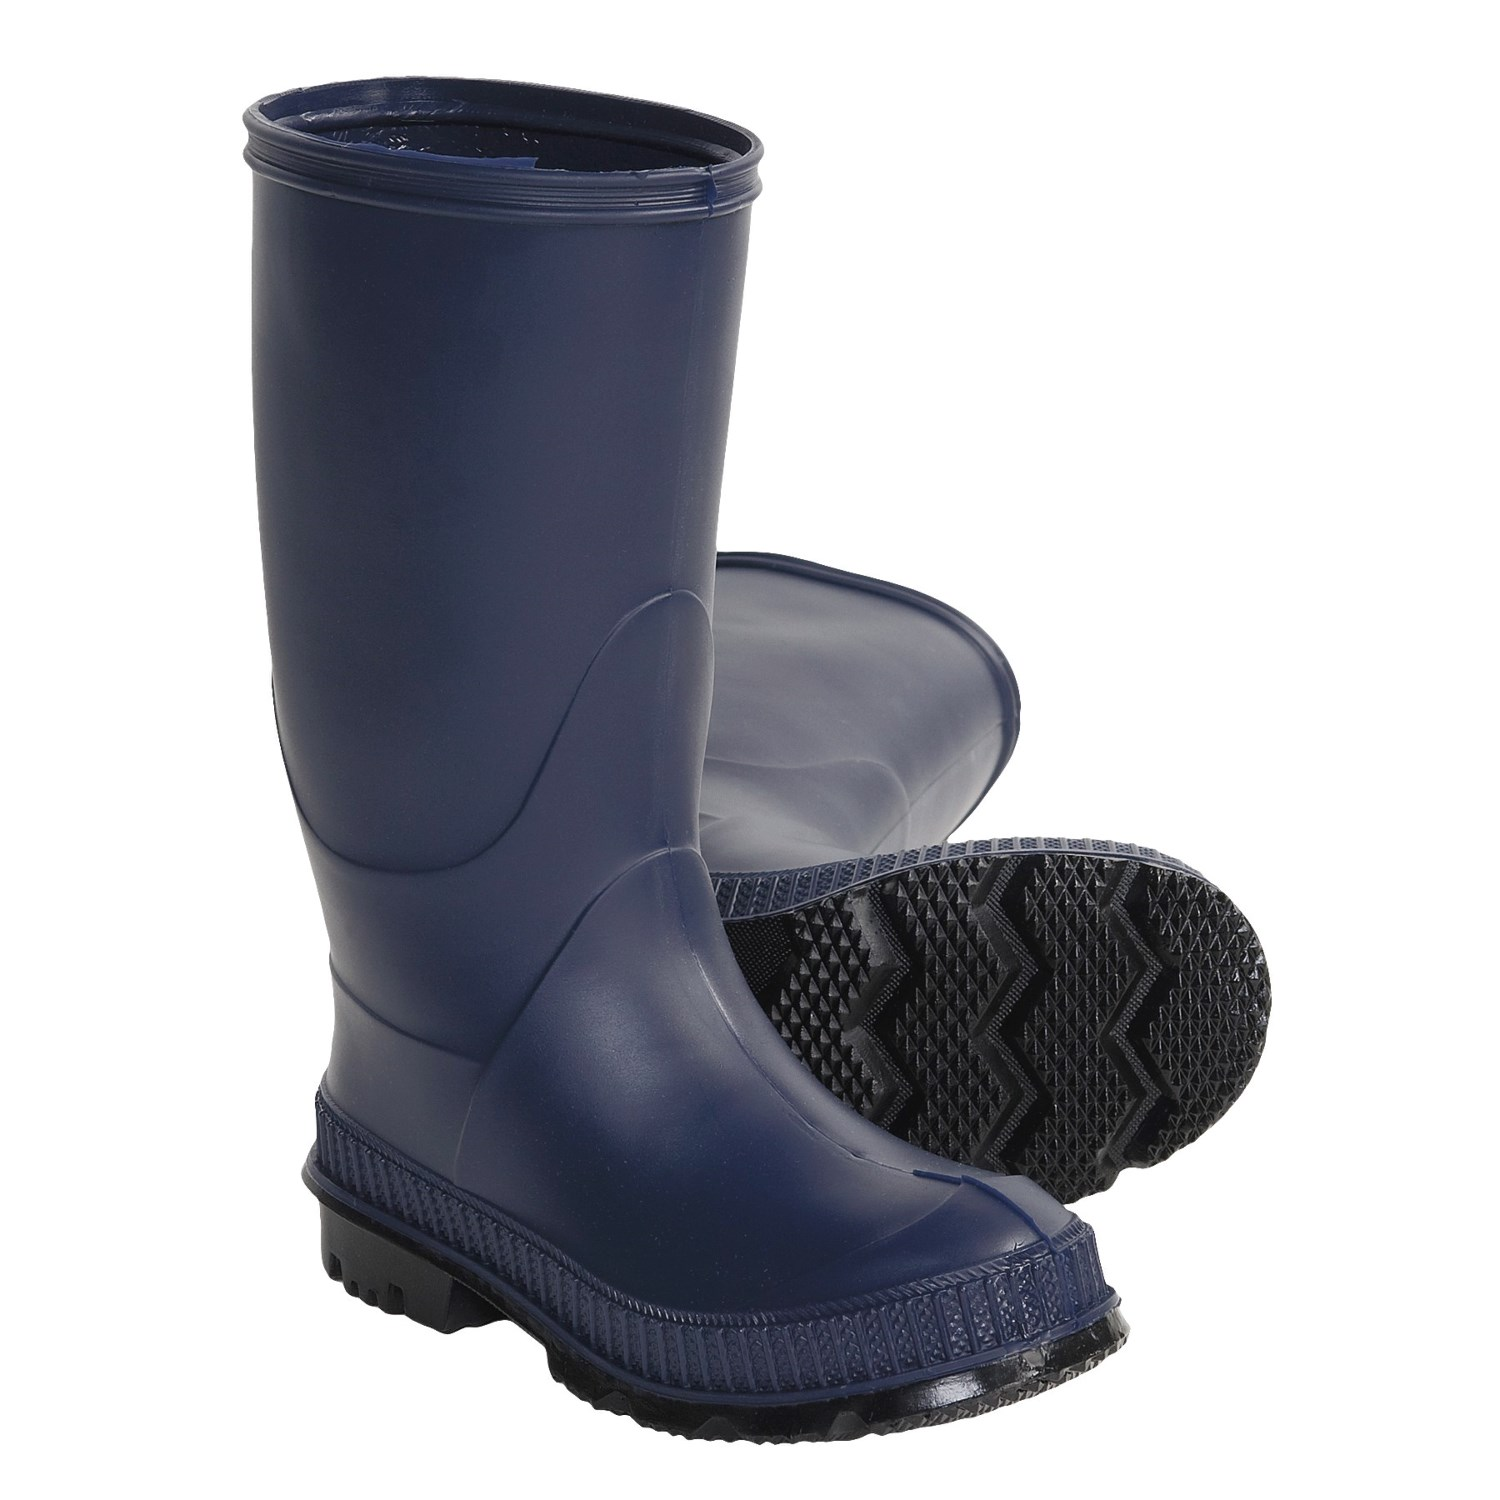 Black Kids Rain Boots Sale: Save Up to 40% Off! Shop sisk-profi.ga's huge selection of Black Rain Boots for Kids - Over 25 styles available. FREE Shipping & Exchanges, and a % price guarantee!